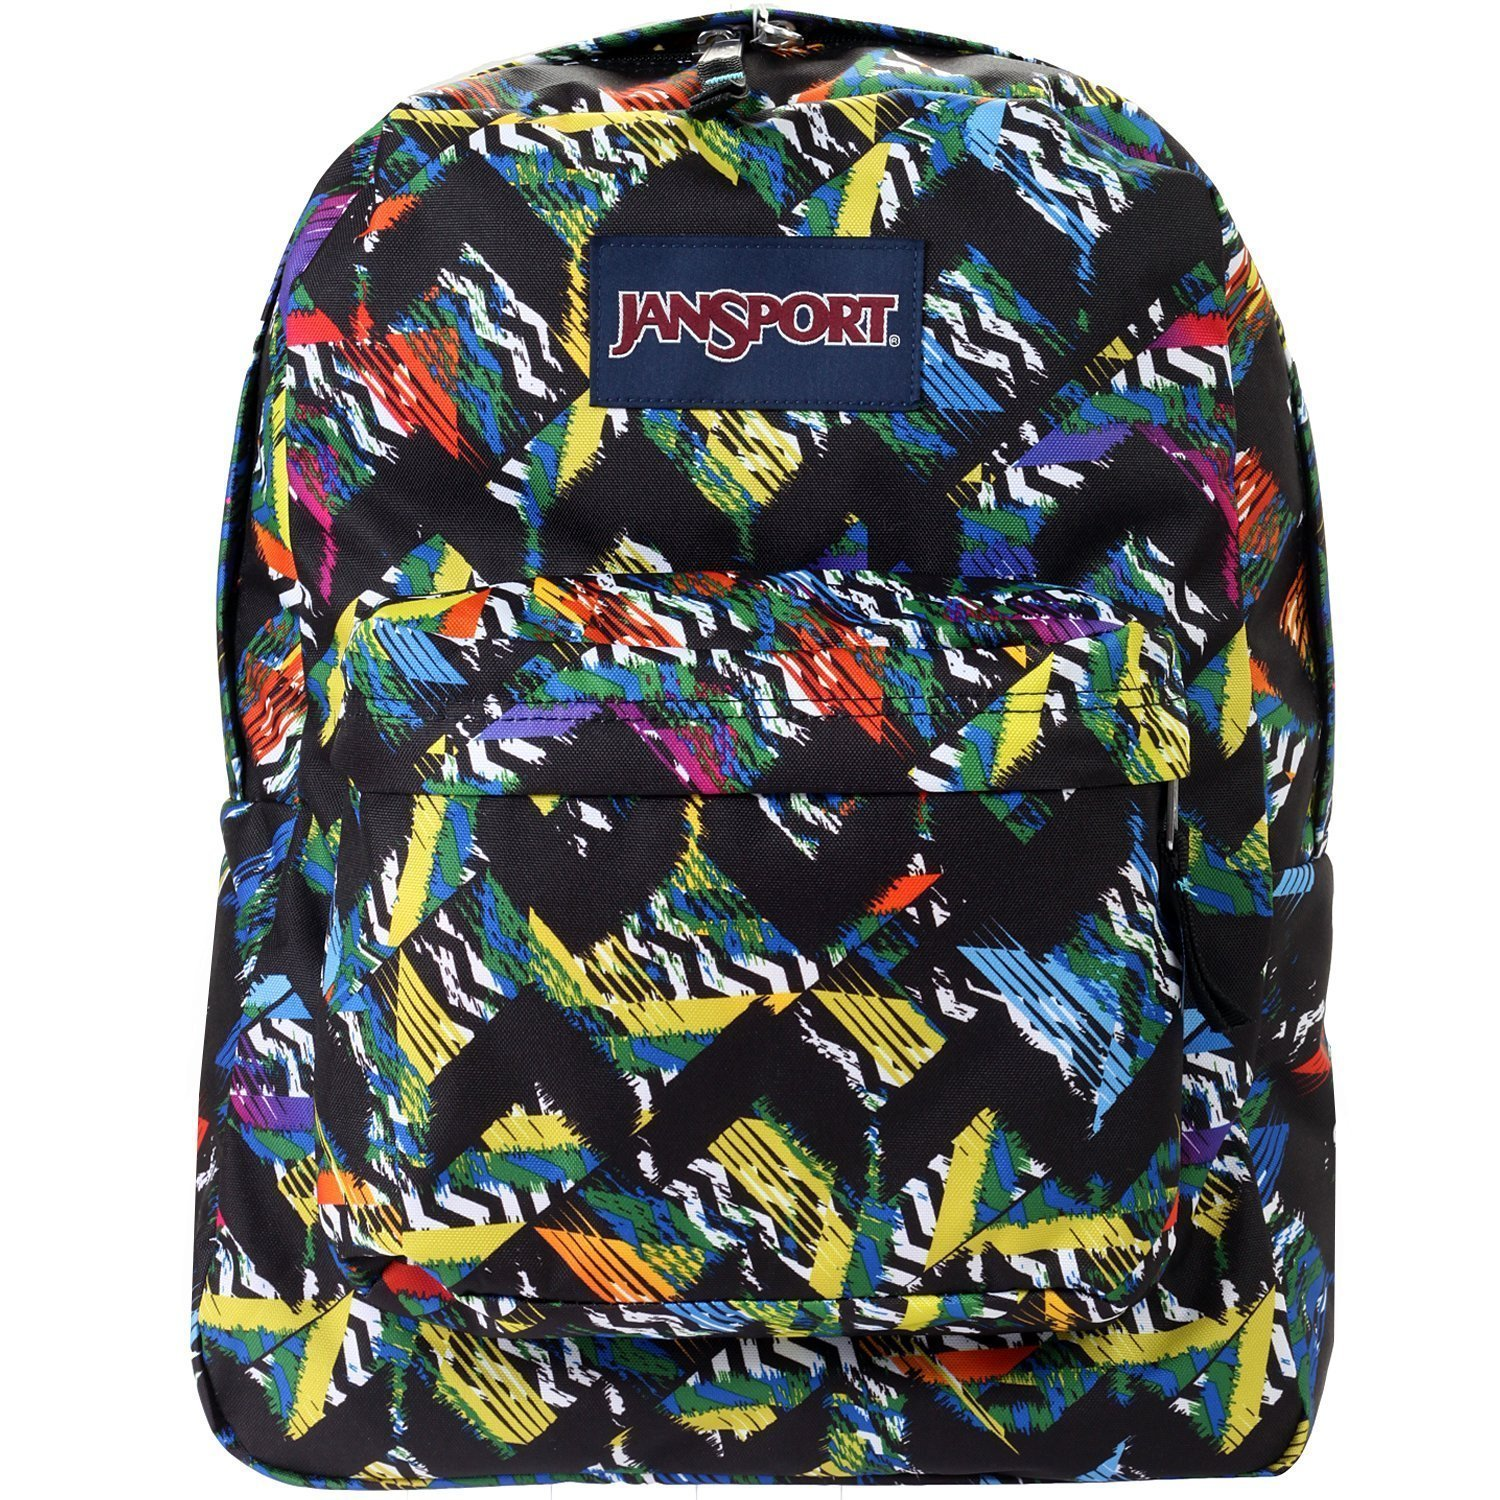 ea2abe881e0e Jansport Backpack Black Friday Sale- Fenix Toulouse Handball